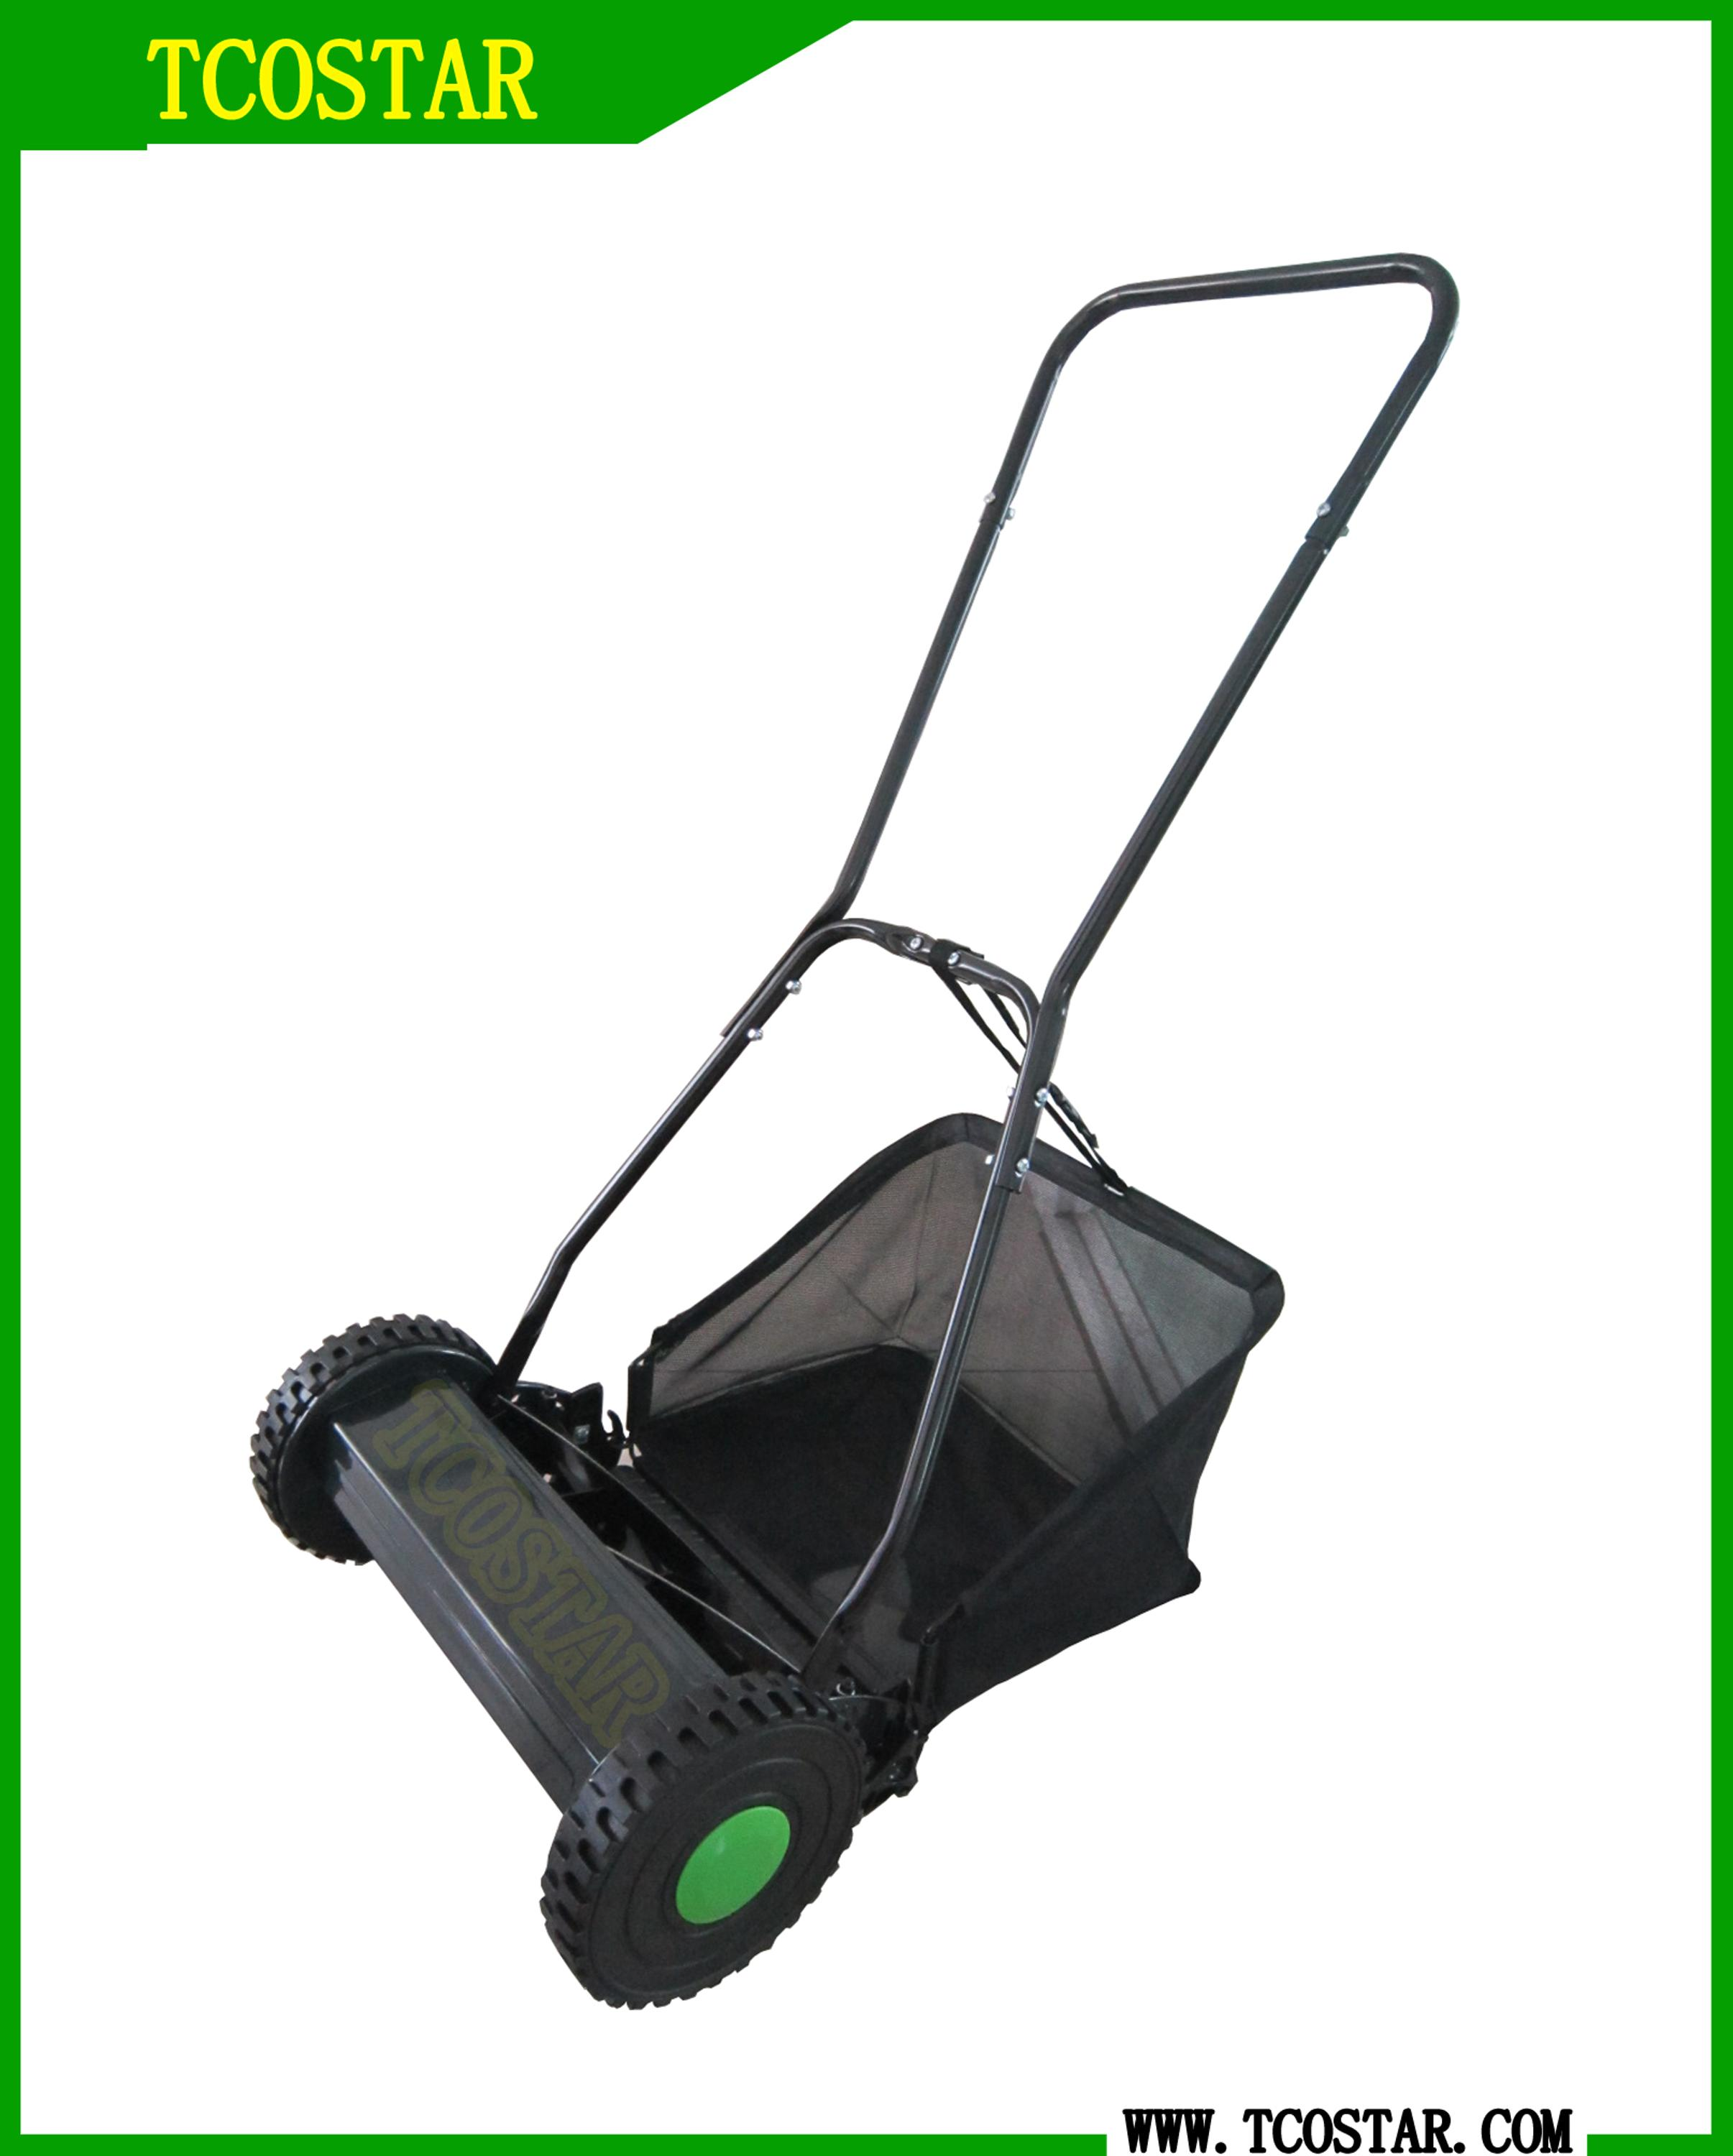 Grass cutting machine manual hand push lawn mower